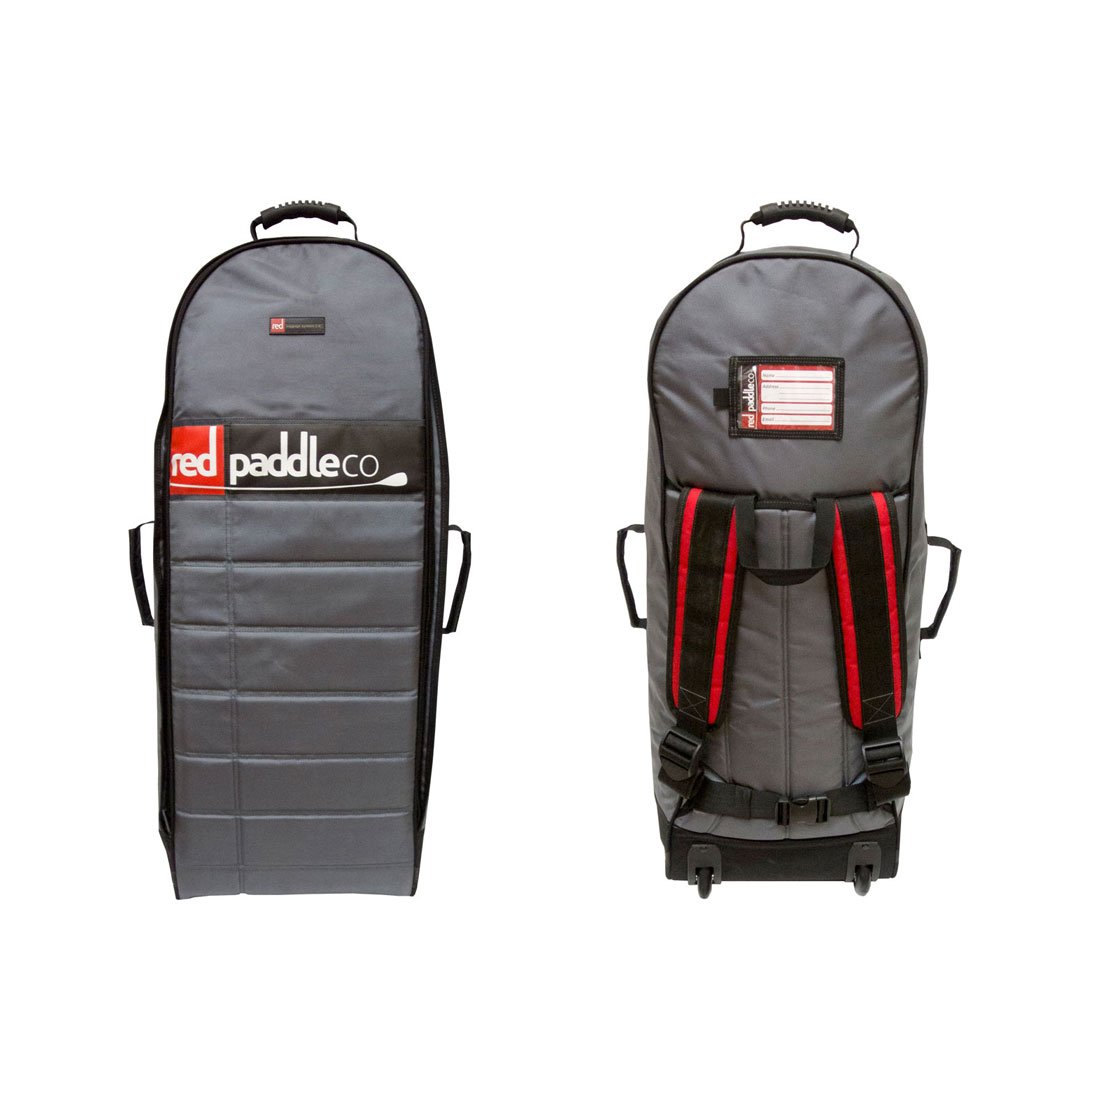 Red Paddle Co Luggage System 2 0